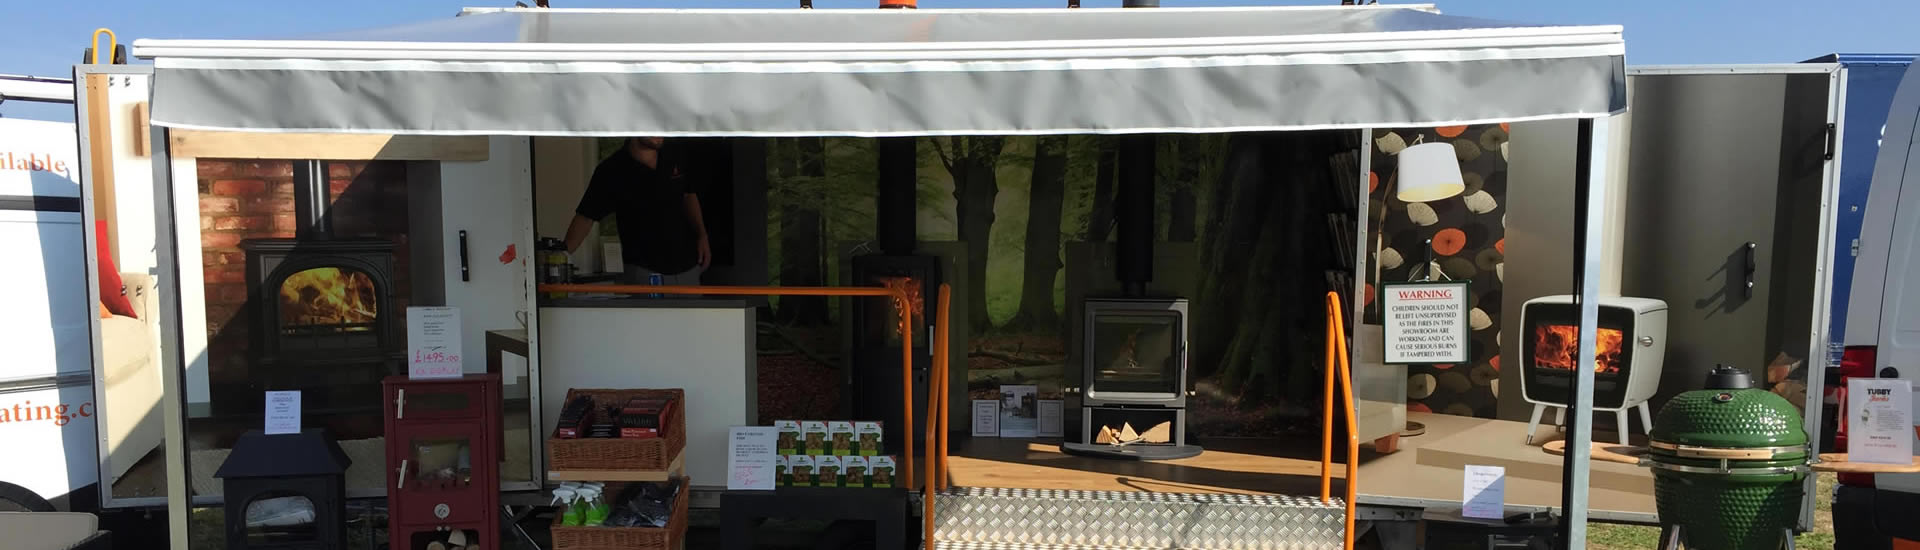 <span class='title t1'>Fires &amp; Stoves</span><span class='text'>See our stand at local country shows</span>